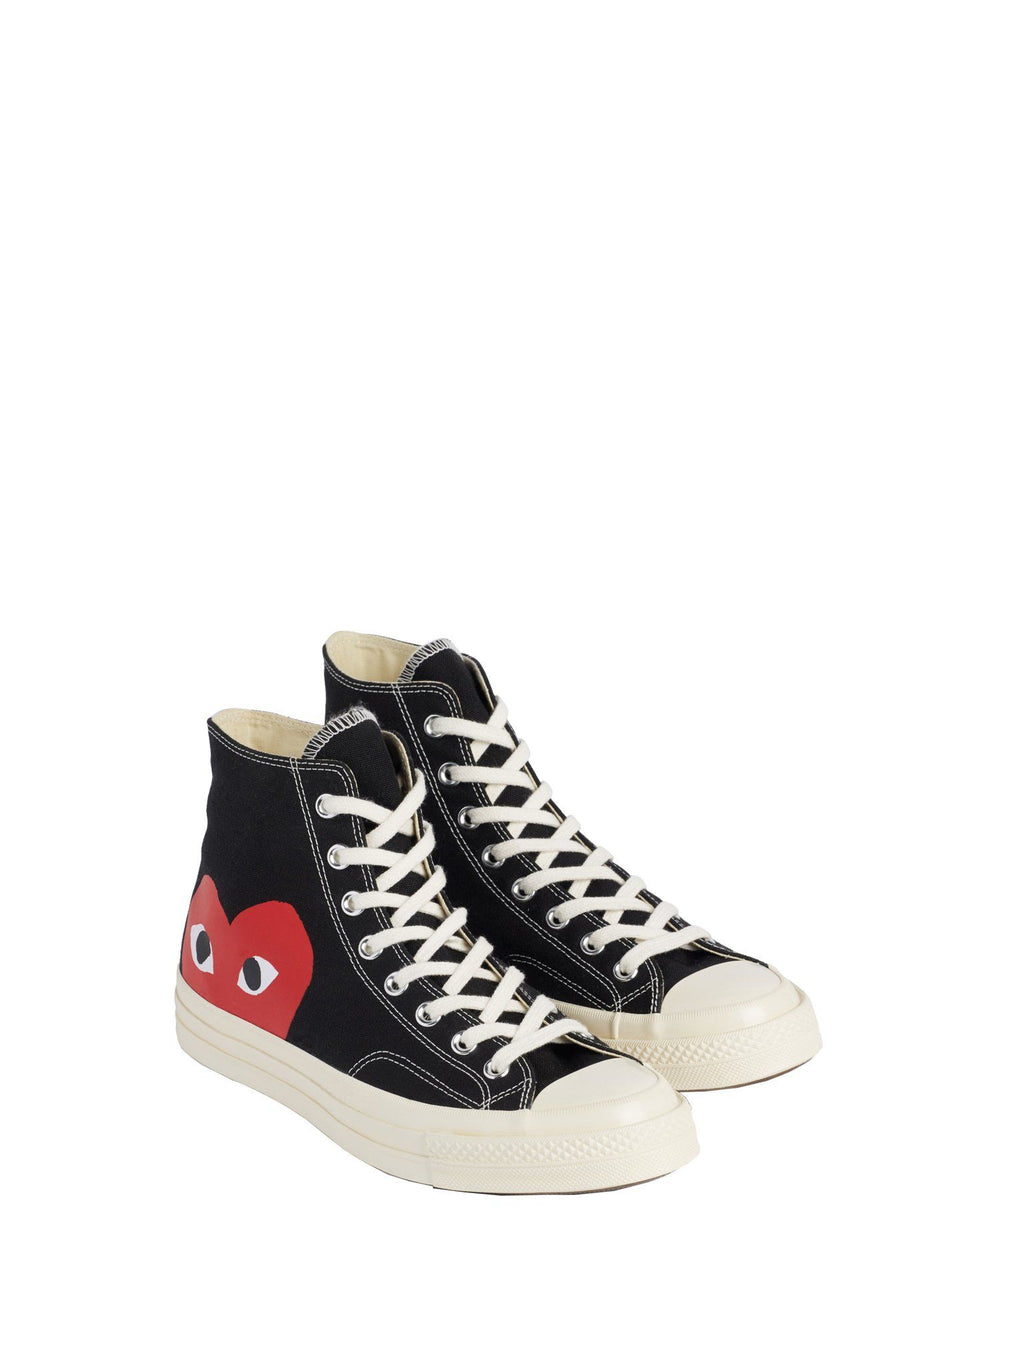 Black Converse Play Red Heart Chuck All Star '70 High Shoes